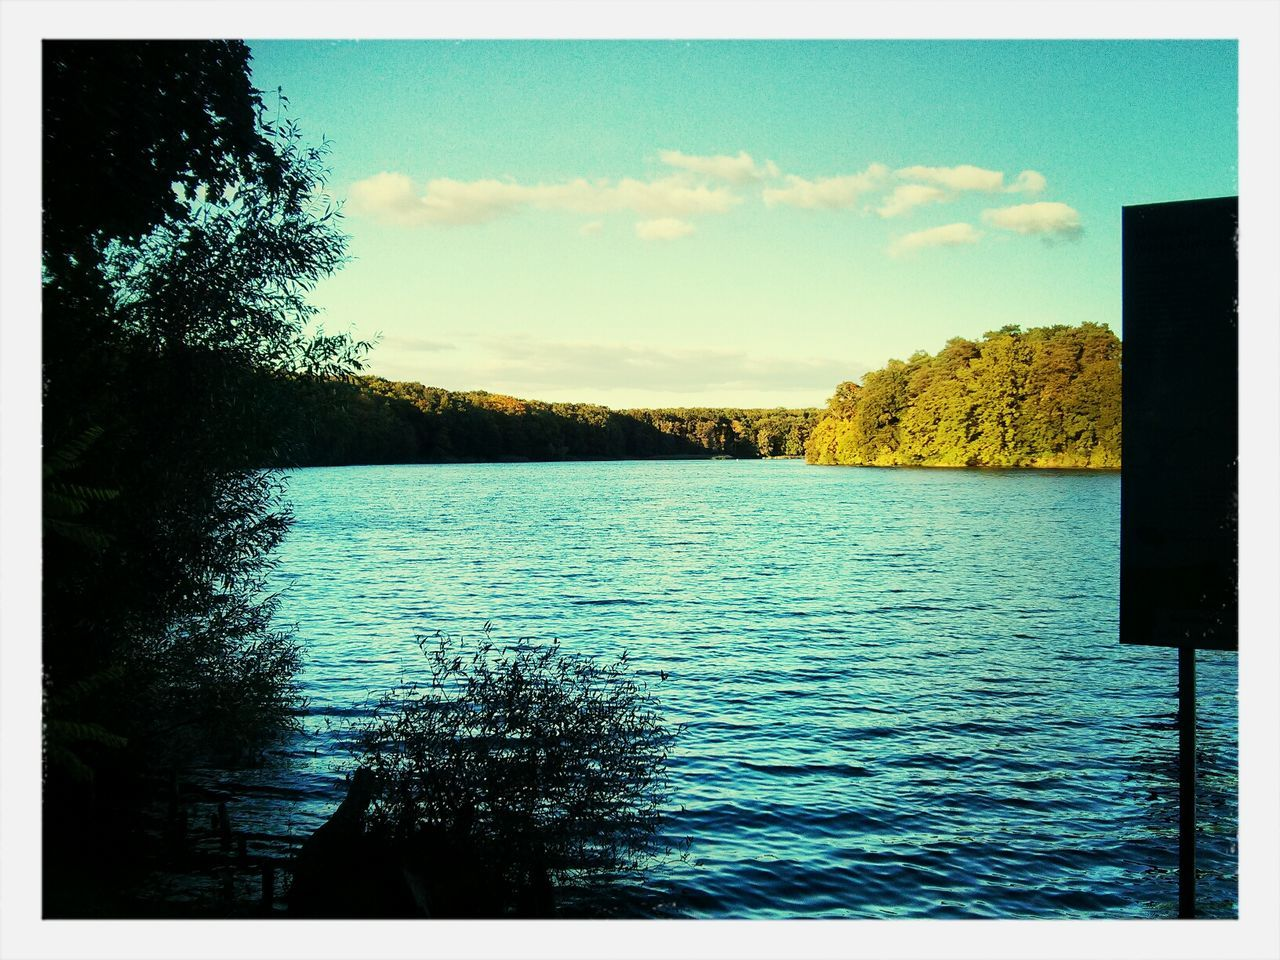 tree, tranquility, tranquil scene, nature, water, sky, scenics, beauty in nature, lake, outdoors, no people, rippled, day, scenery